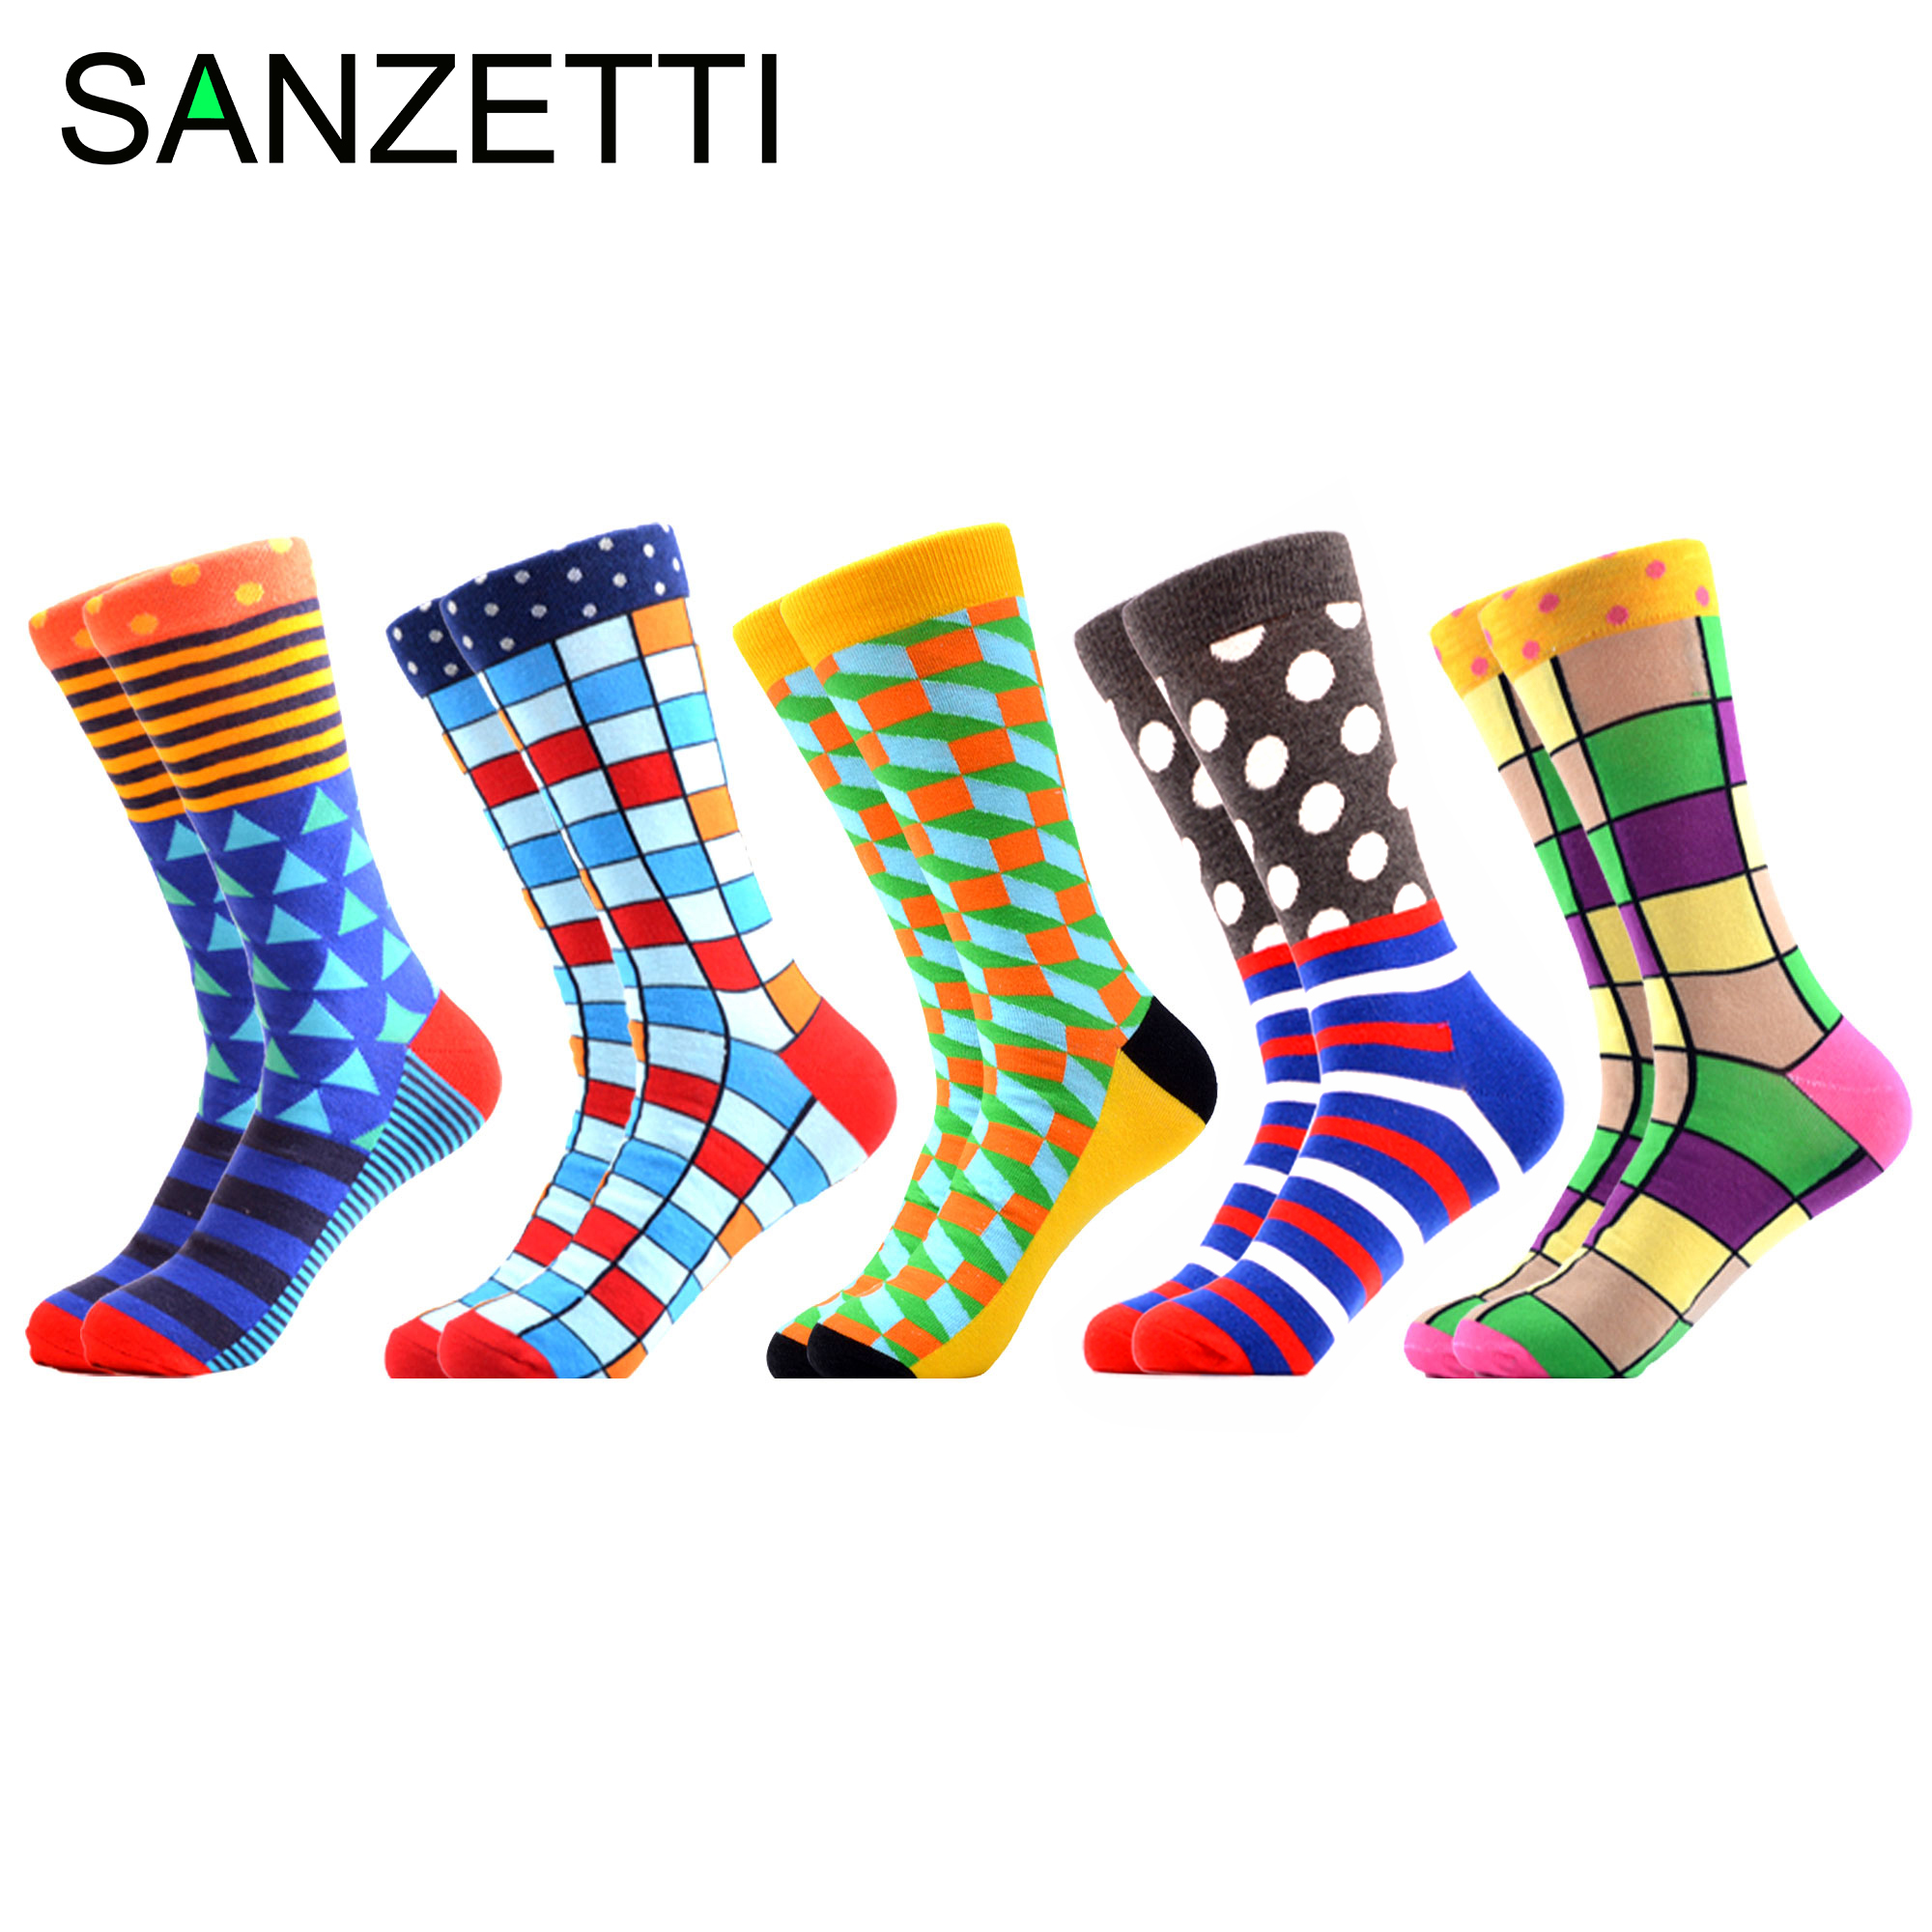 SANZETTI 5 Pairs/Lot Colorful Men's Combed Cotton Dress Wedding Sock Funny Male Dot Fruit Crew Business Socks For Birthday Gifts